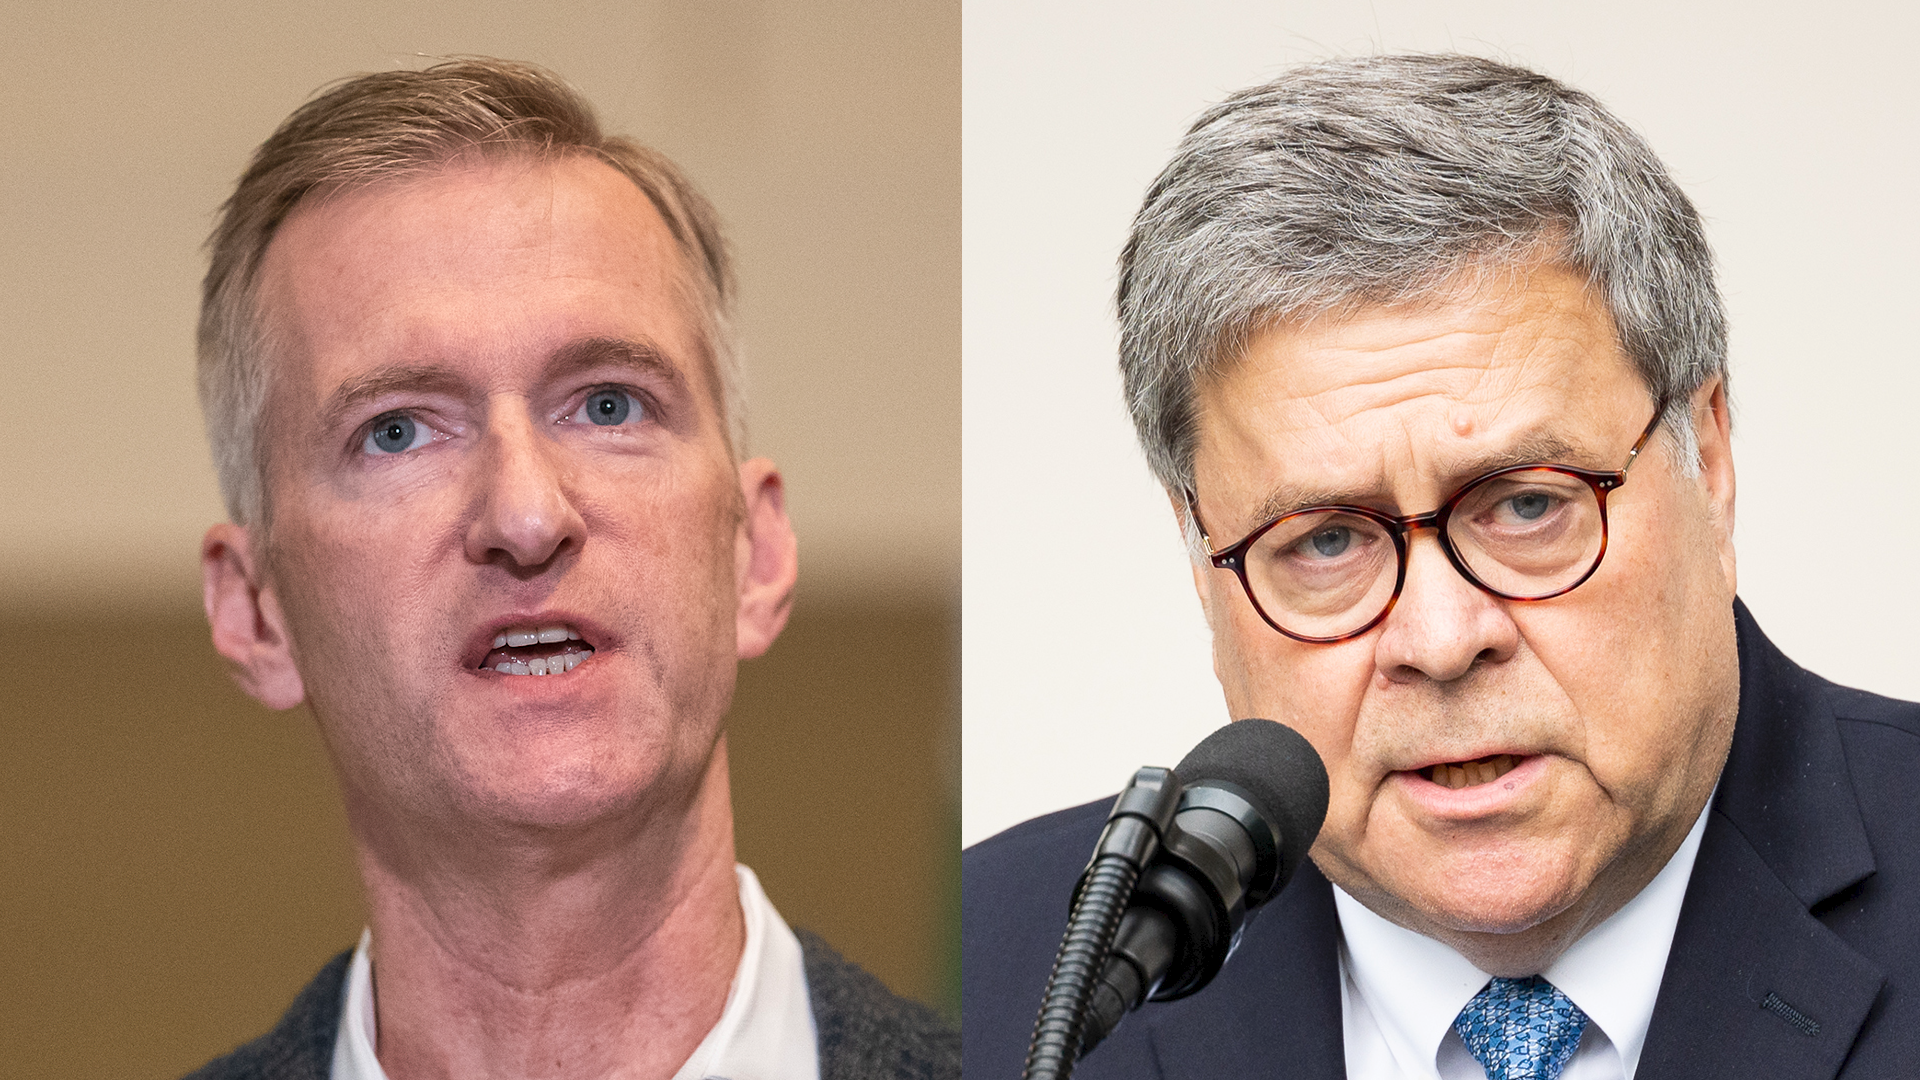 Portland Mayor responds to AG Barr's threat of arrest: 'Befitting of a totalitarian regime'